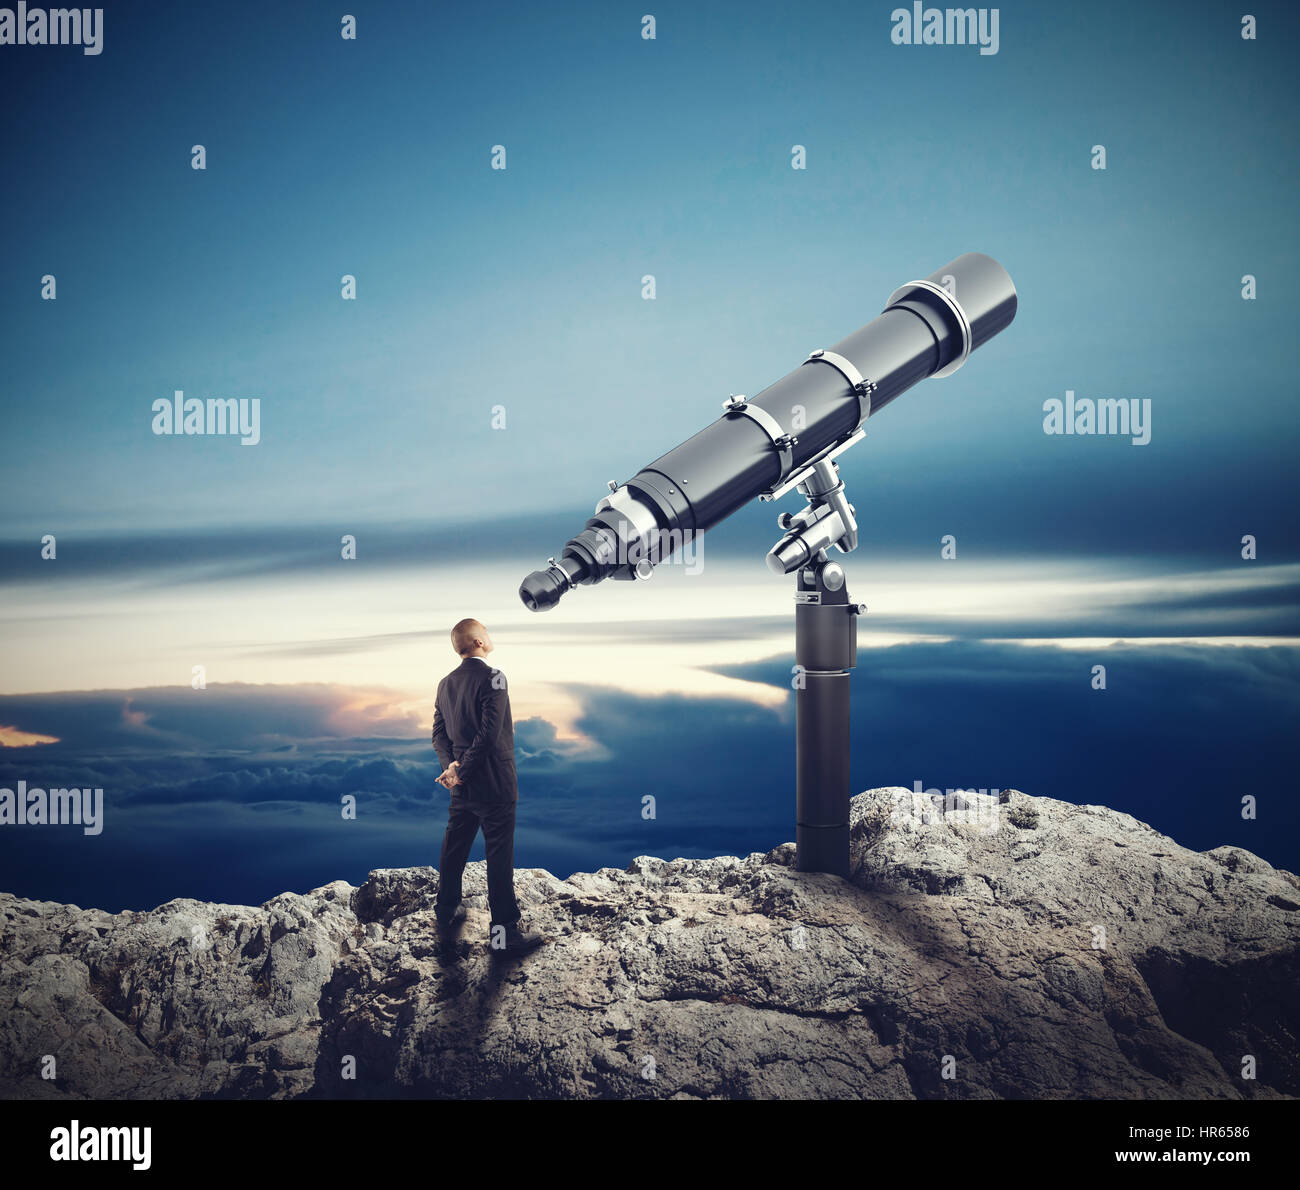 Looking to the future. 3D Rendering - Stock Image